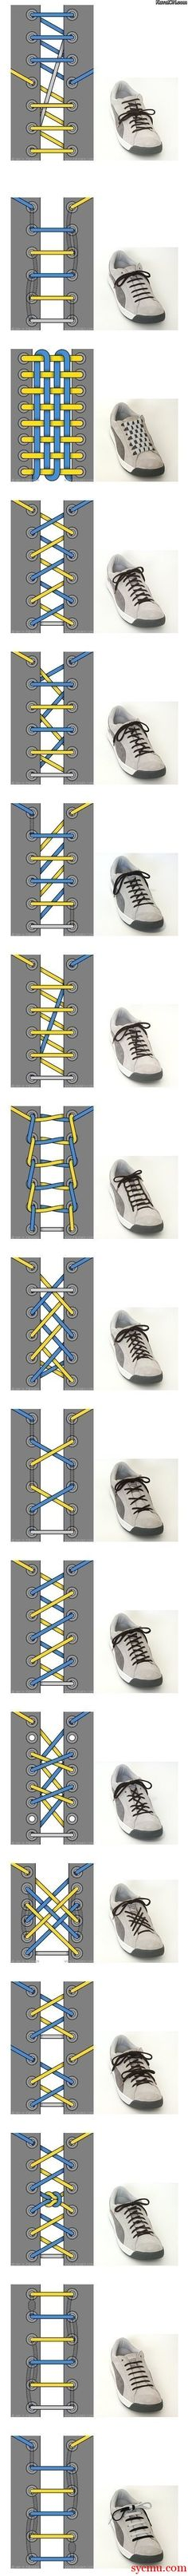 17 Different Ways to Tie Your Shoelaces